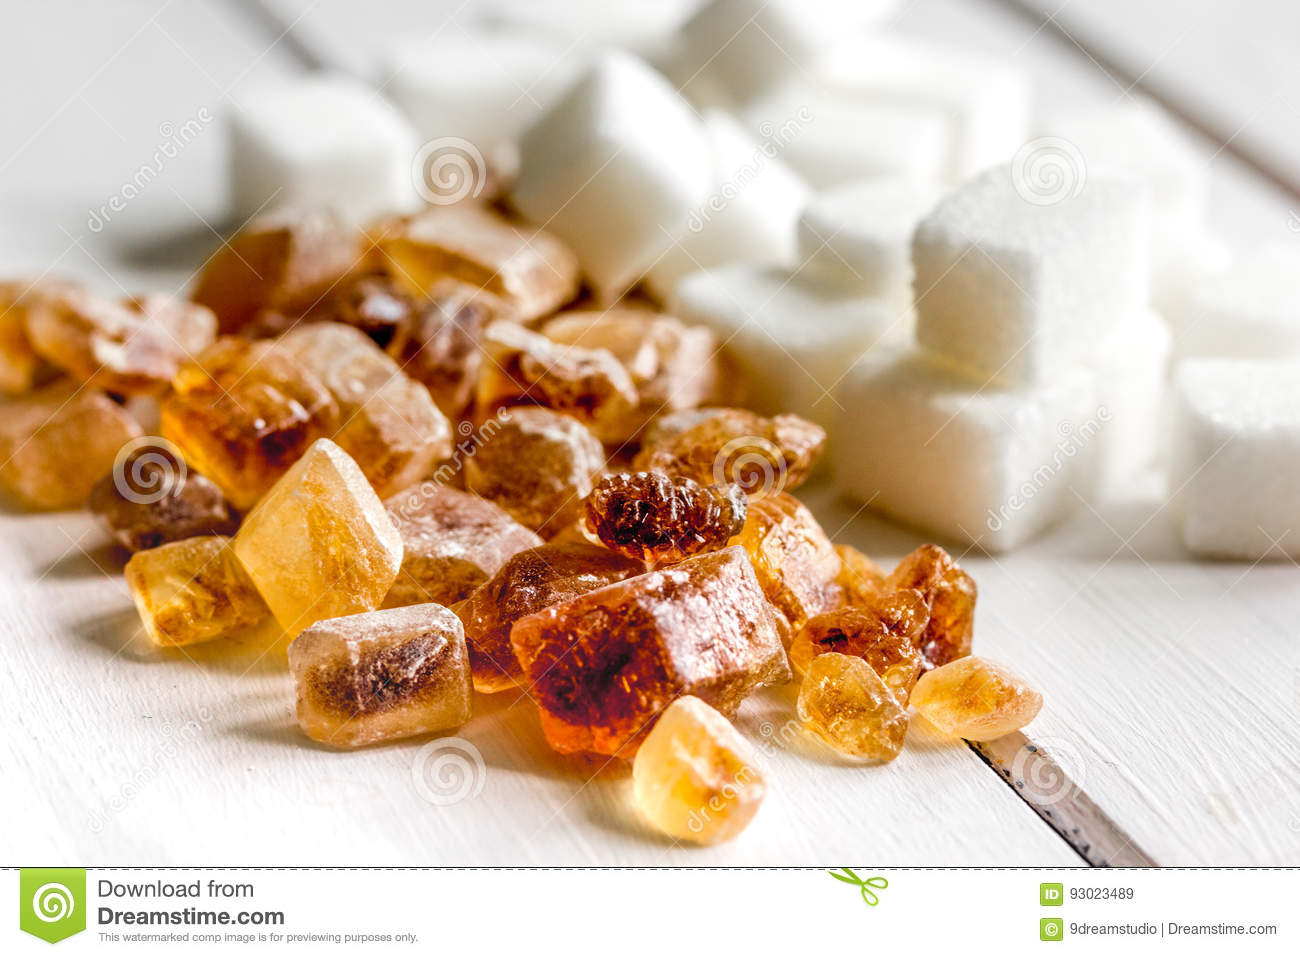 Cooking sweets set with different sugar lumps on white table background close up